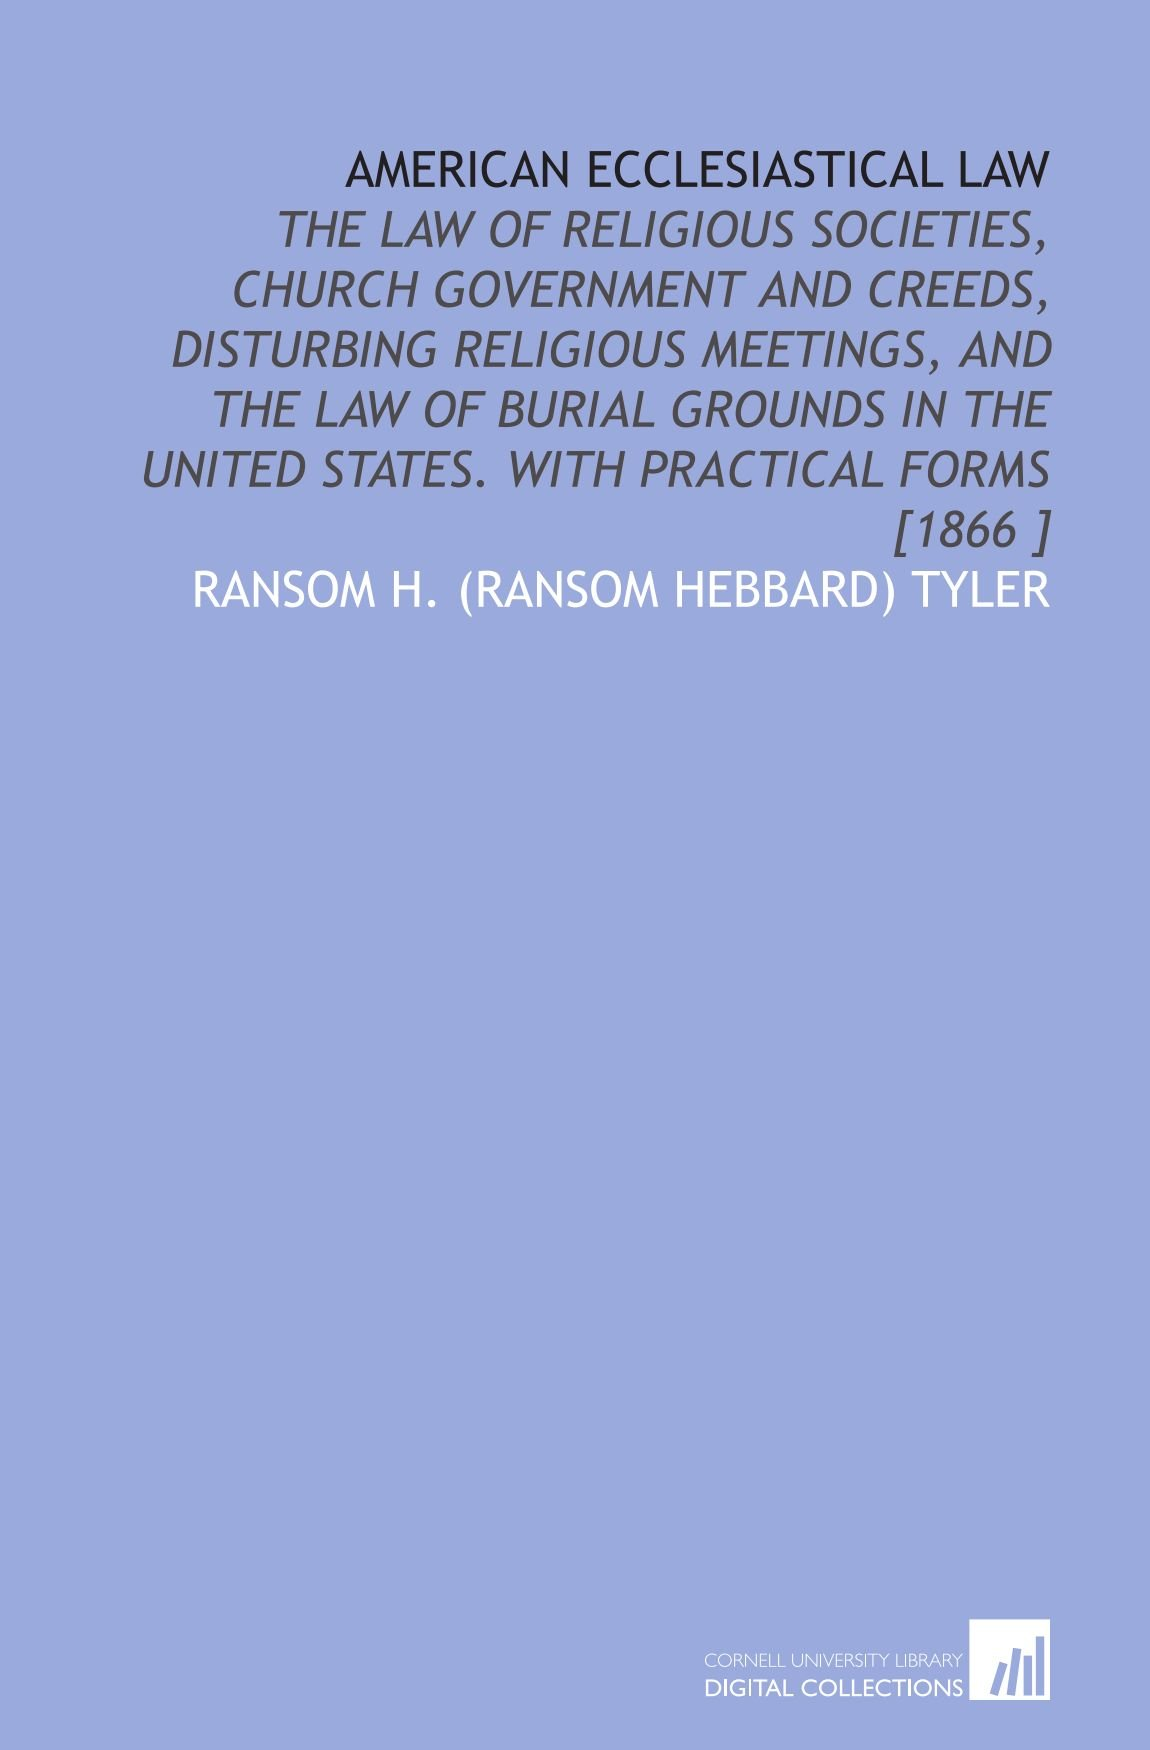 American Ecclesiastical Law: The Law of Religious Societies, Church Government and Creeds, Disturbing Religious Meetings, and the Law of Burial ... United States.  With Practical Forms [1866 ] PDF